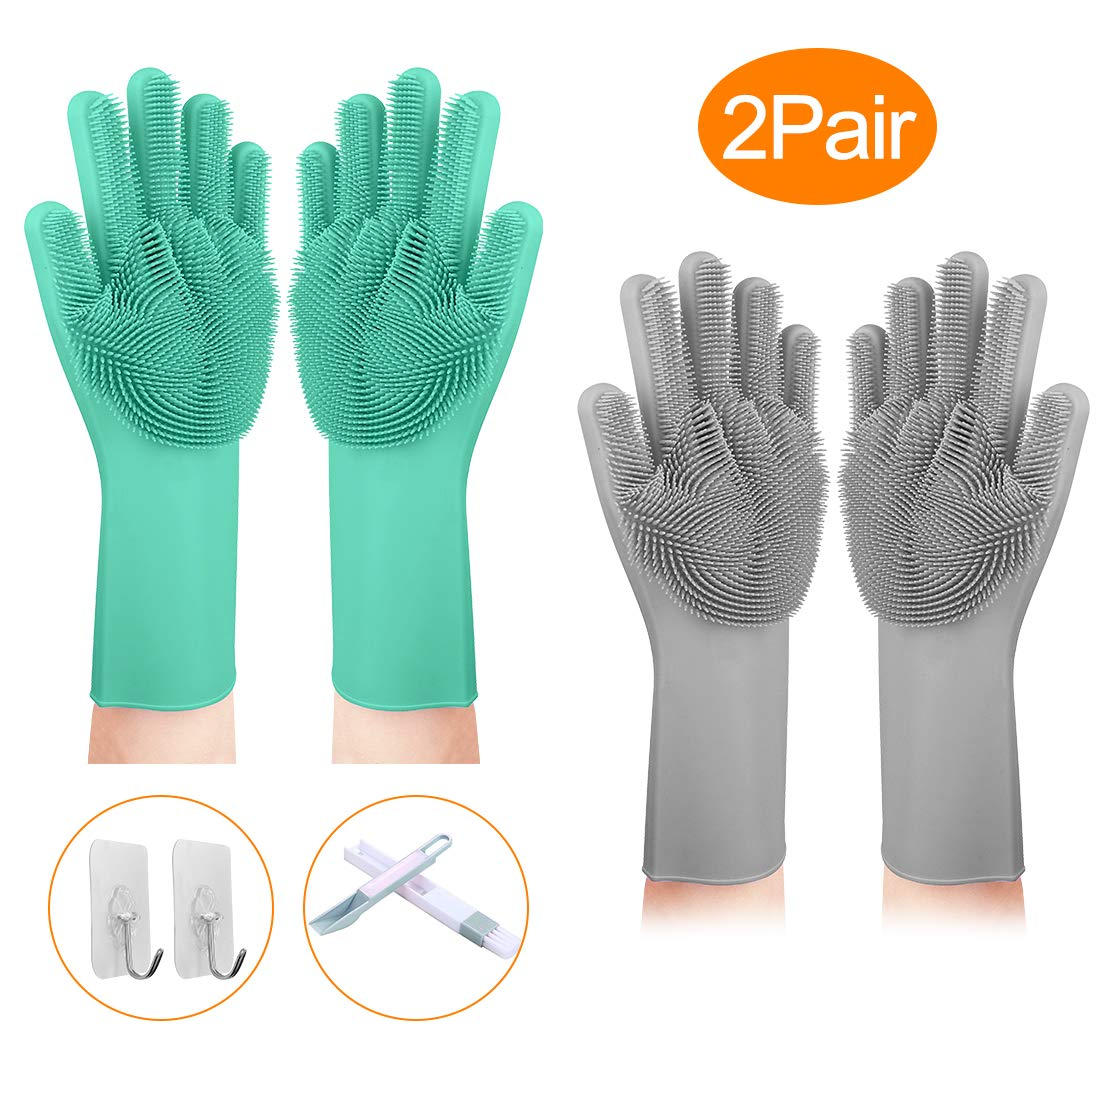 Scrubbing Gloves, 2Pair Magic Saksak Silicone Dishwashing Gloves, Cleaning Gloves with Wash Scrubbers, Great for Kitchen,Bathroom,Household,Pet Hair Care,Car Washing.